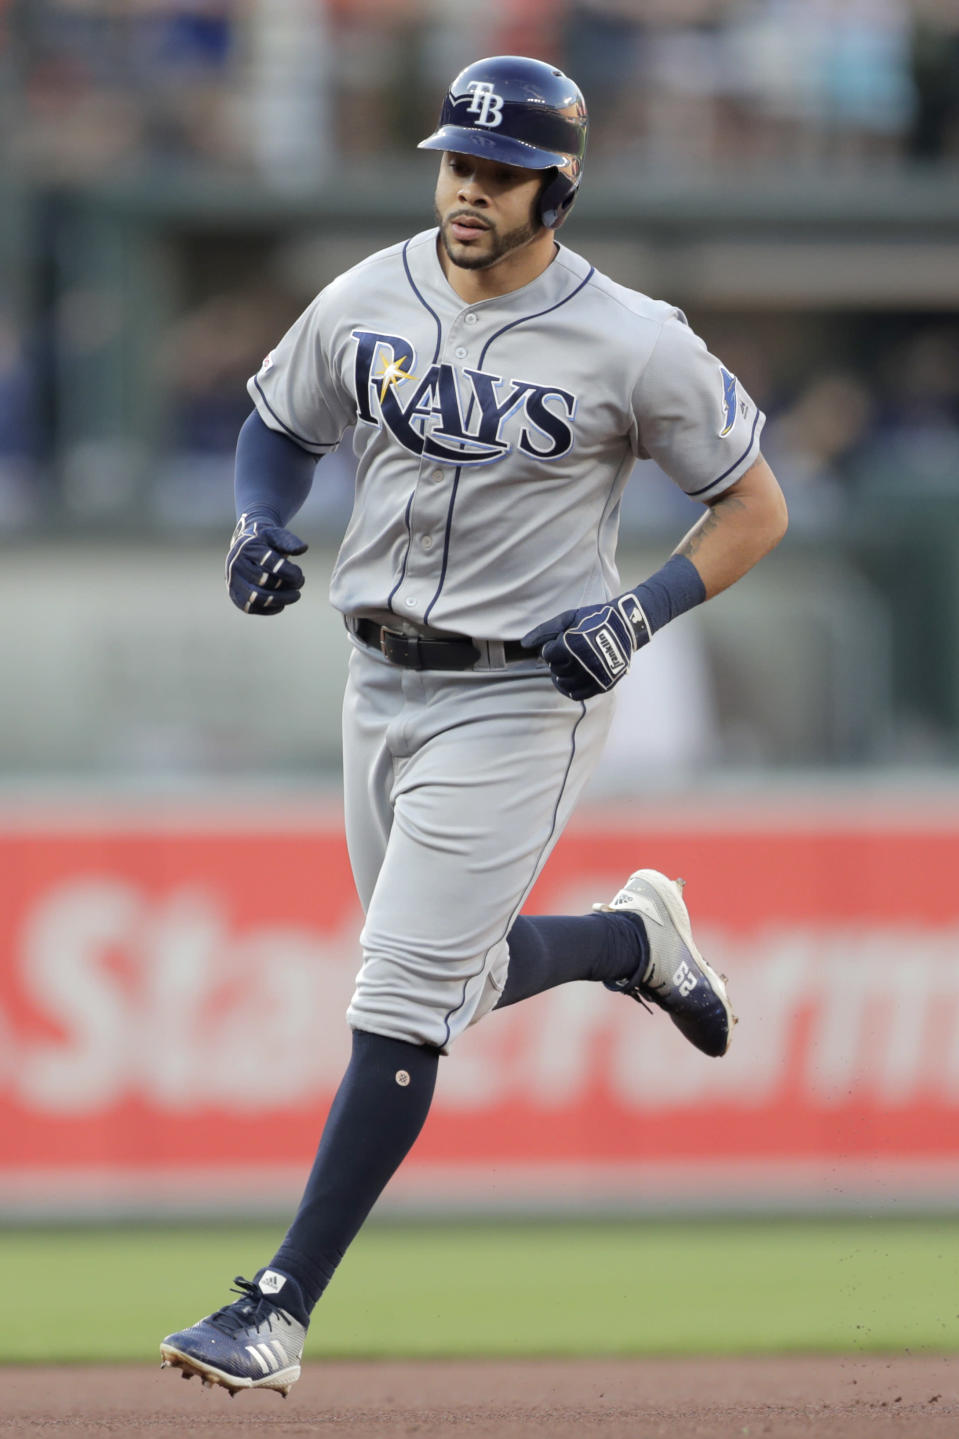 Tampa Bay Rays' Tommy Pham runs the bases after hitting a solo home run off Baltimore Orioles starting pitcher Dylan Bundy during the first inning of a baseball game Friday, July 12, 2019, in Baltimore. (AP Photo/Julio Cortez)